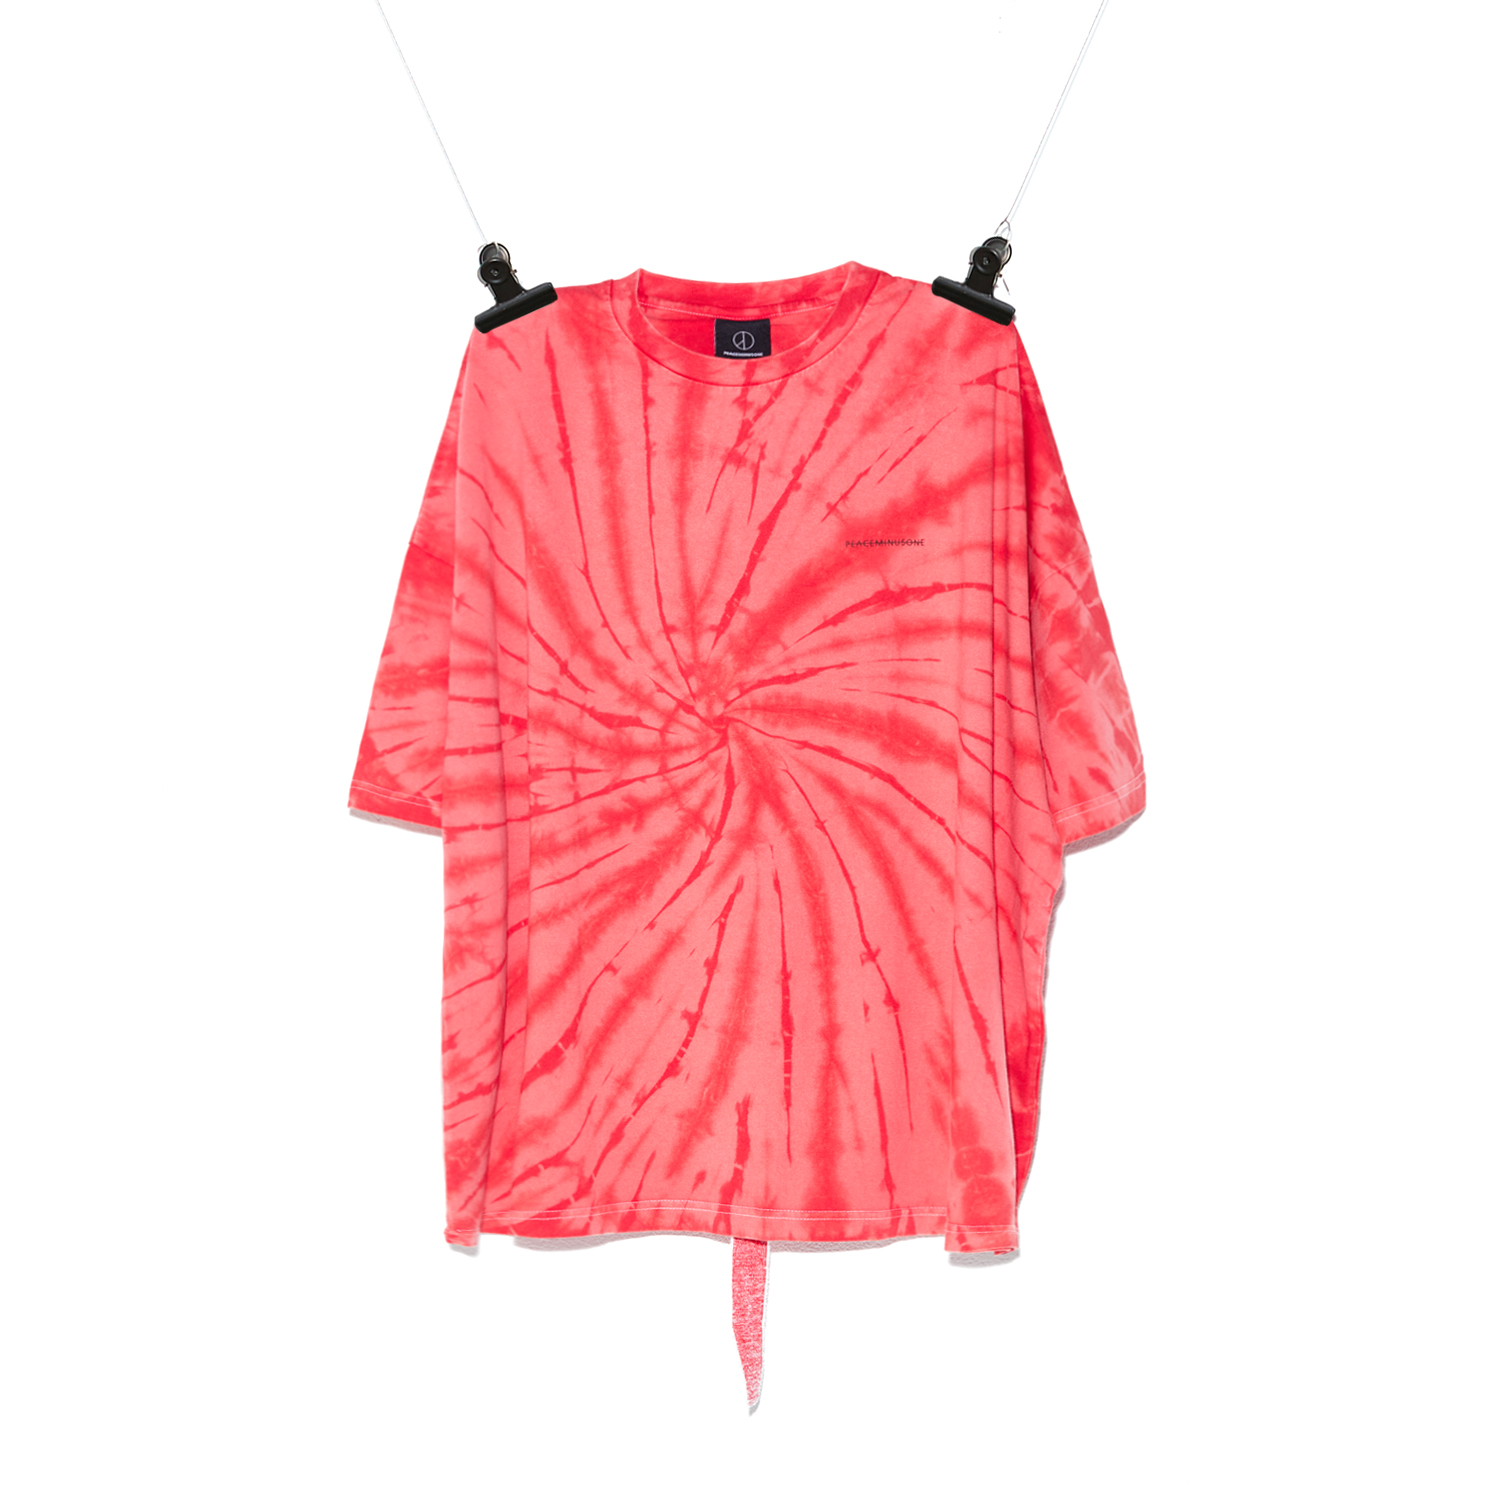 PMO TIE-DYE T-SHIRTS #5 RED